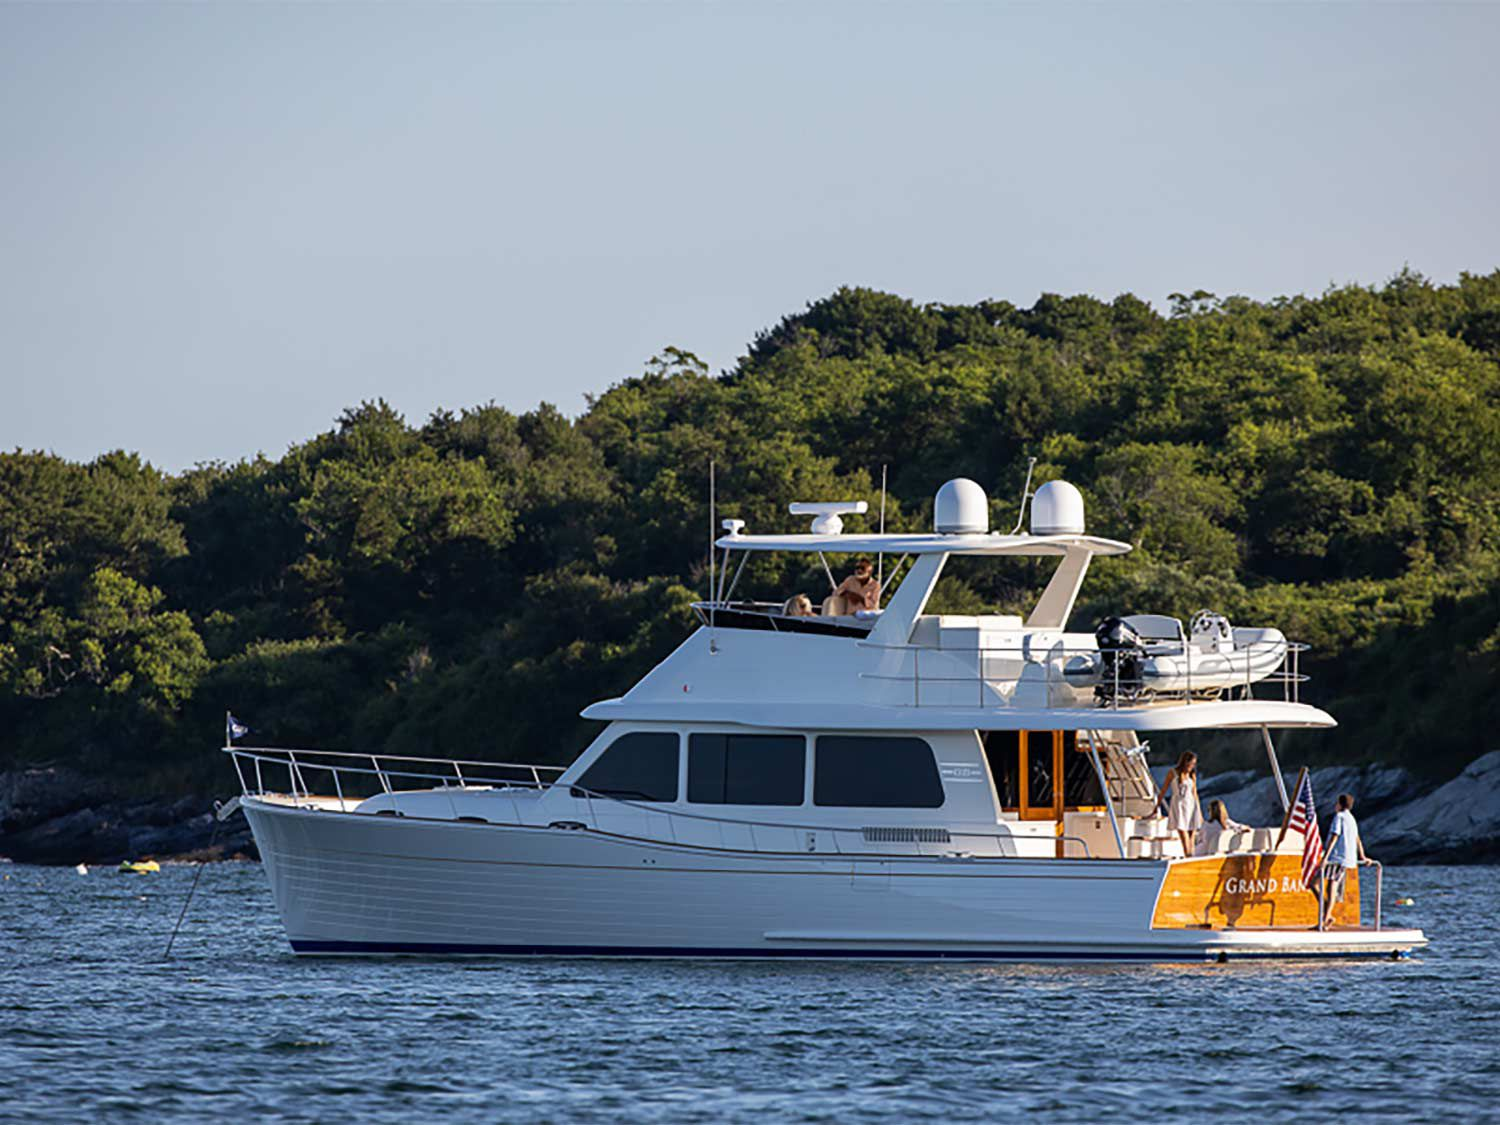 The Grand Banks 54 has a robust build with an infused fiberglass hull and infused carbon fiber decks and superstructure.